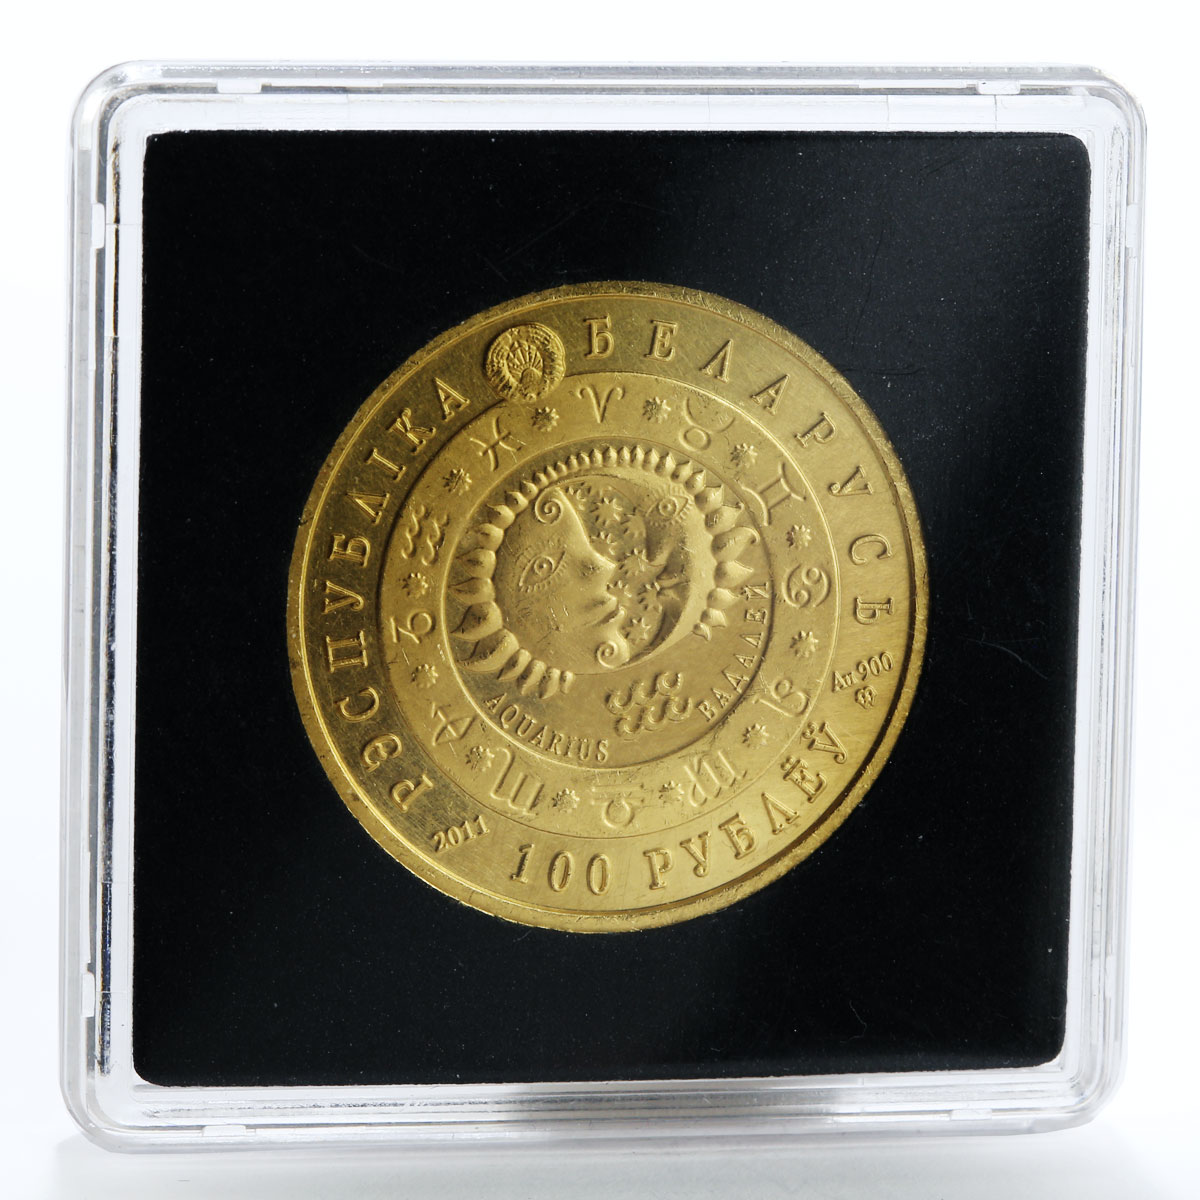 Belarus 100 rubles Zodiac Aquarius Child in bathtub Sun and Moon gold coin 2011